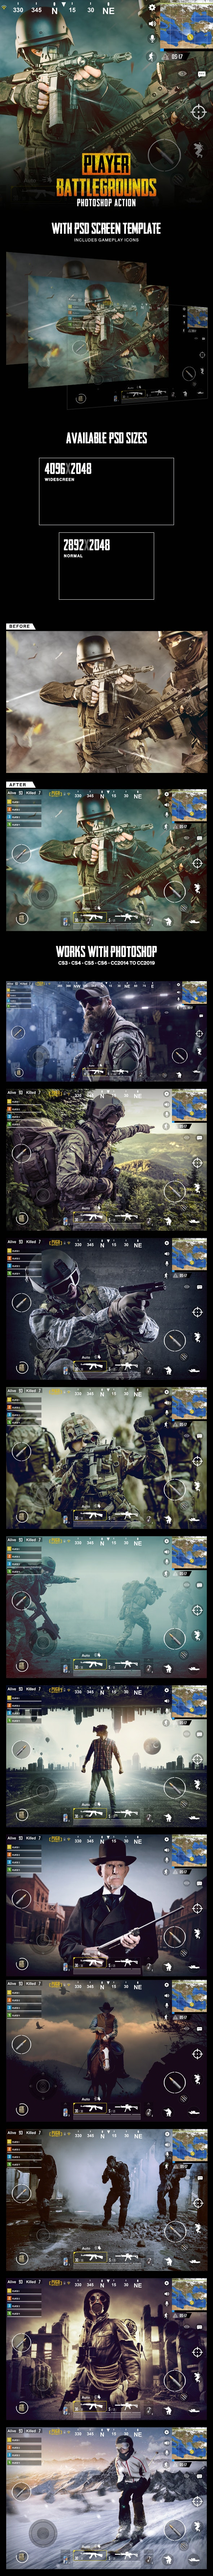 Player Battlegrounds Photoshop Action - Photo Effects Actions